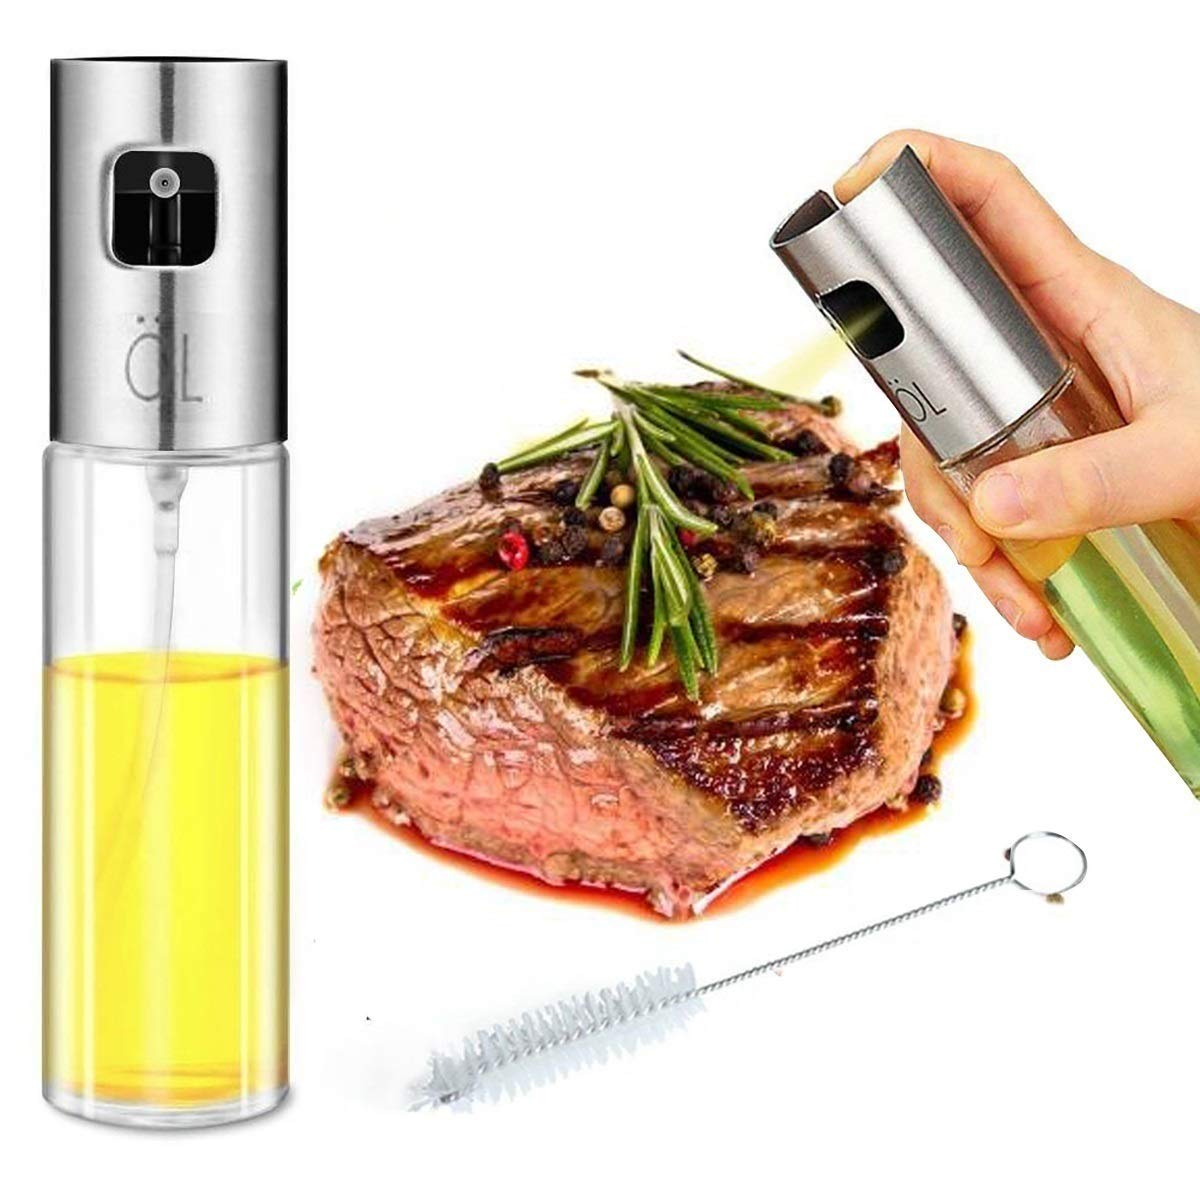 B-hero Olive Oil Sprayer Oil Sprayer for Cooking 100ML/3.4OZ Glass Kitchen Oil/Vinegar Sprayer, with Cleaning Brush for BBQ/Cooking/Grilling/Baking/Frying